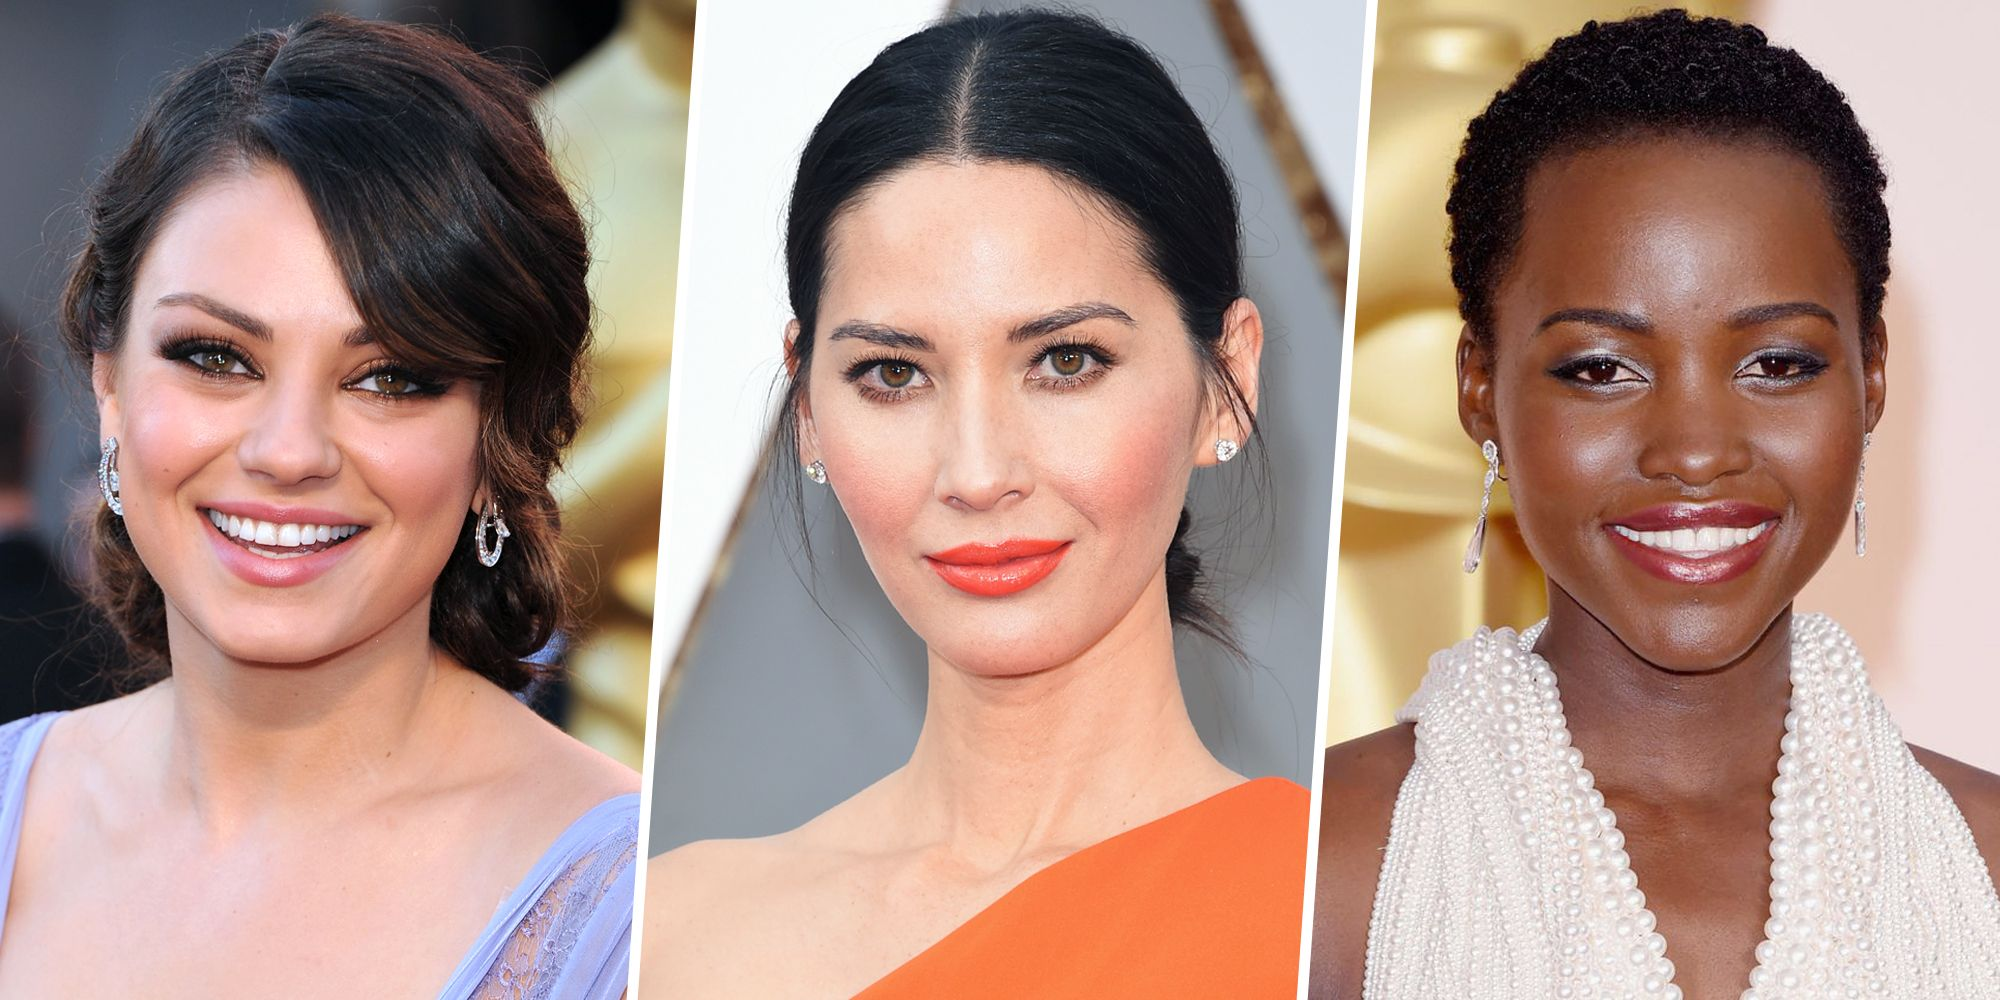 The 30 Absolute Best Oscars Beauty Looks of All Time